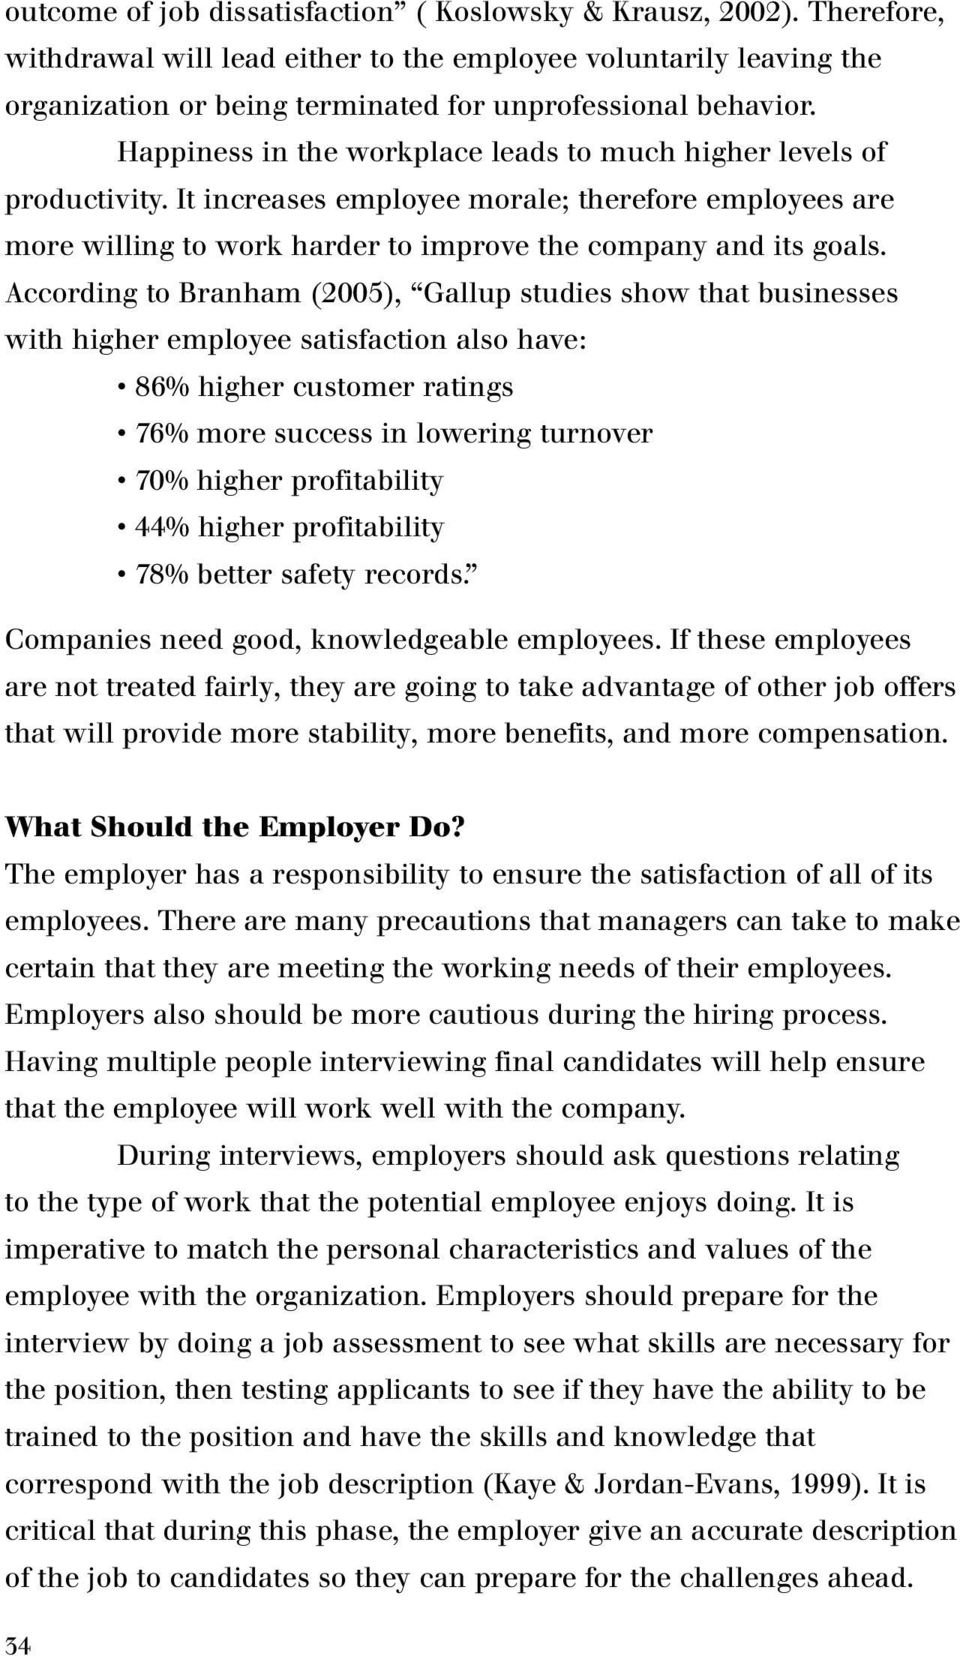 According to Branham (2005), Gallup studies show that businesses with higher employee satisfaction also have: 86% higher customer ratings 76% more success in lowering turnover 70% higher